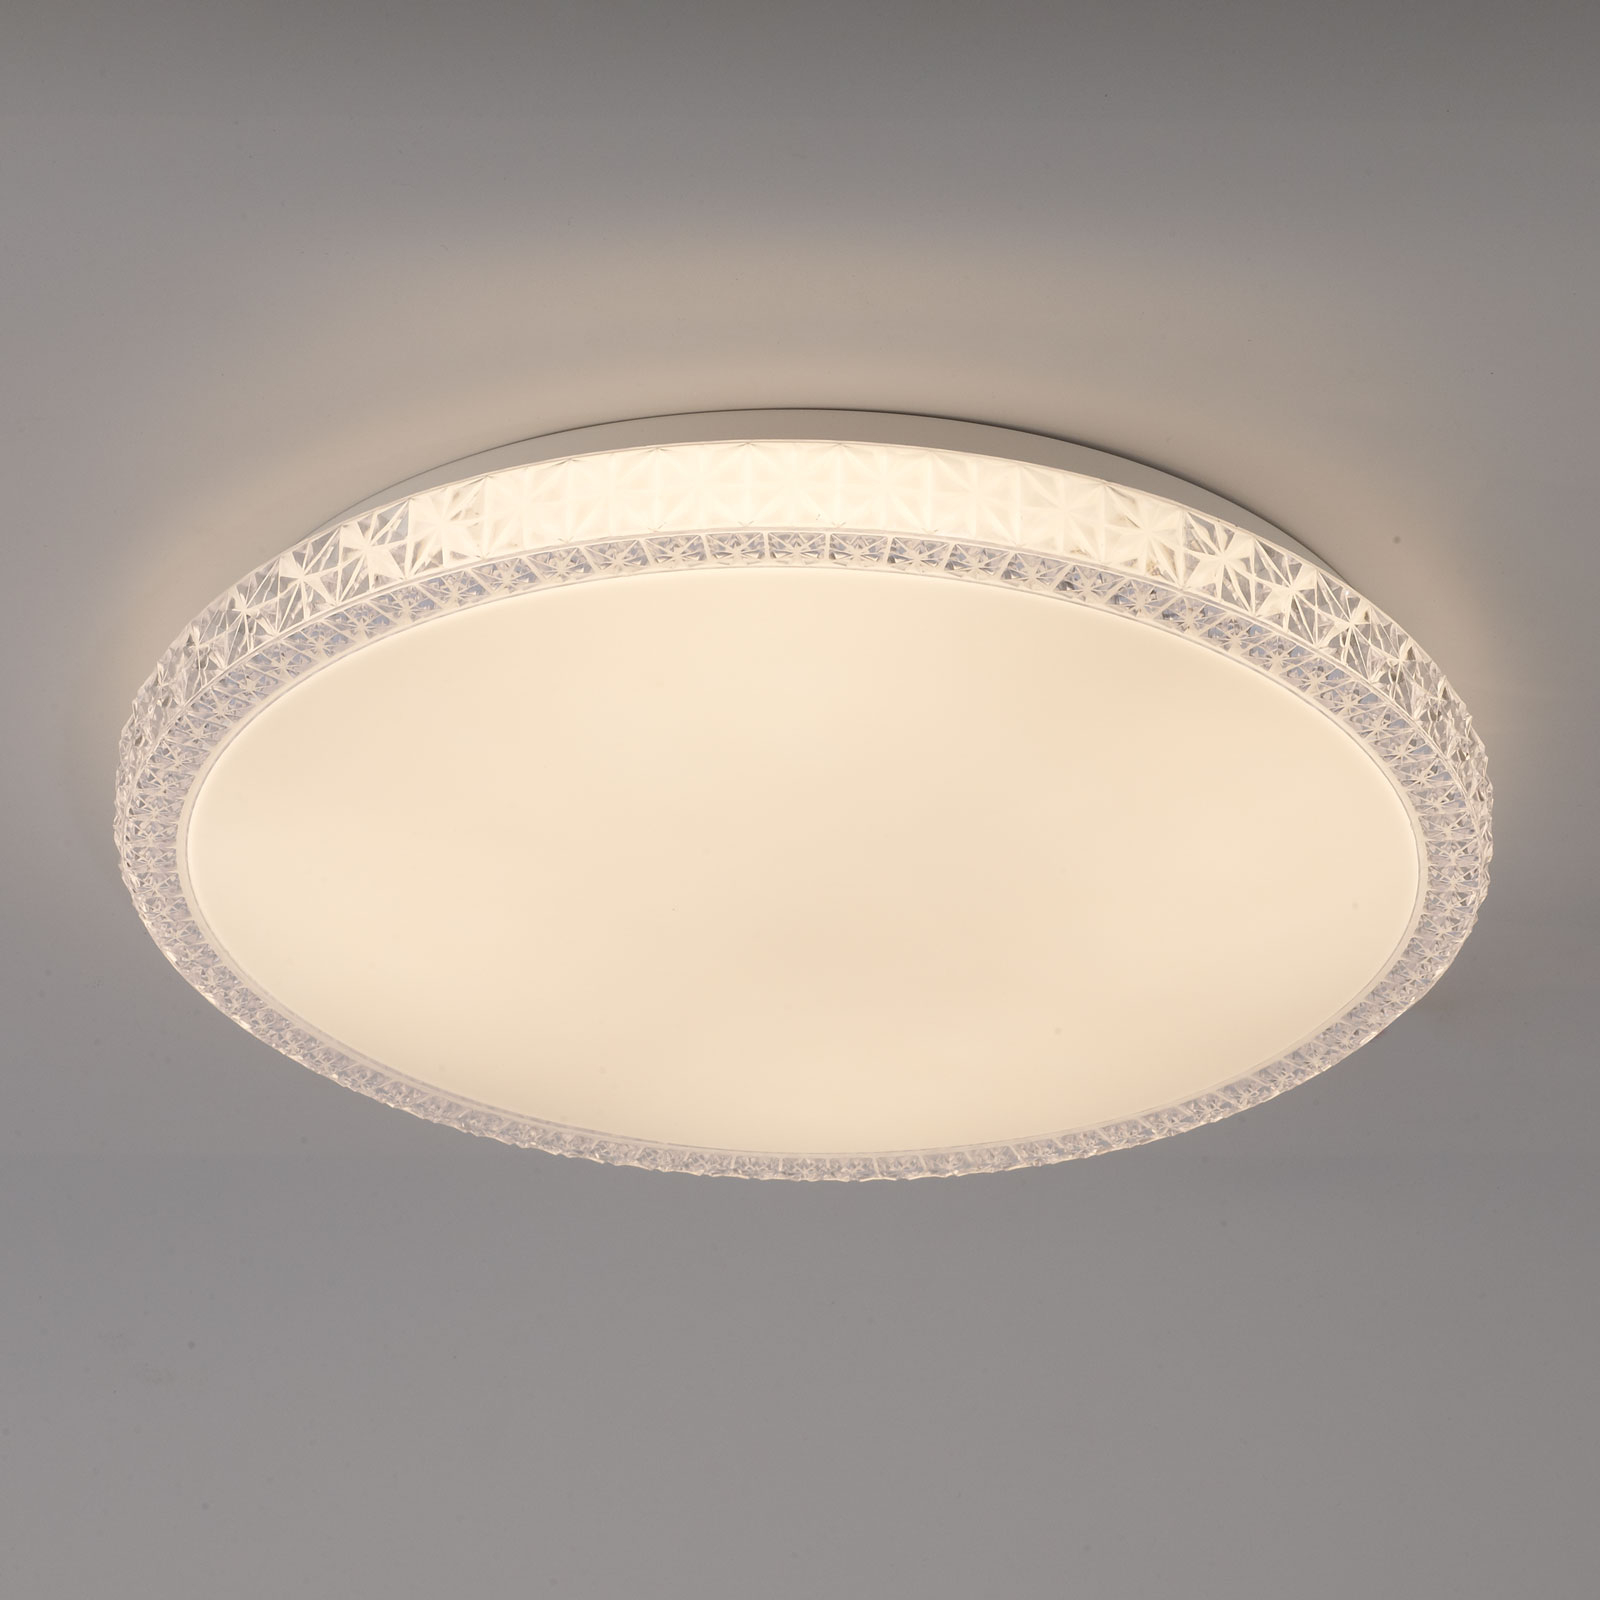 Plafonnier LED Naxos, dim., chang. couleur blanc